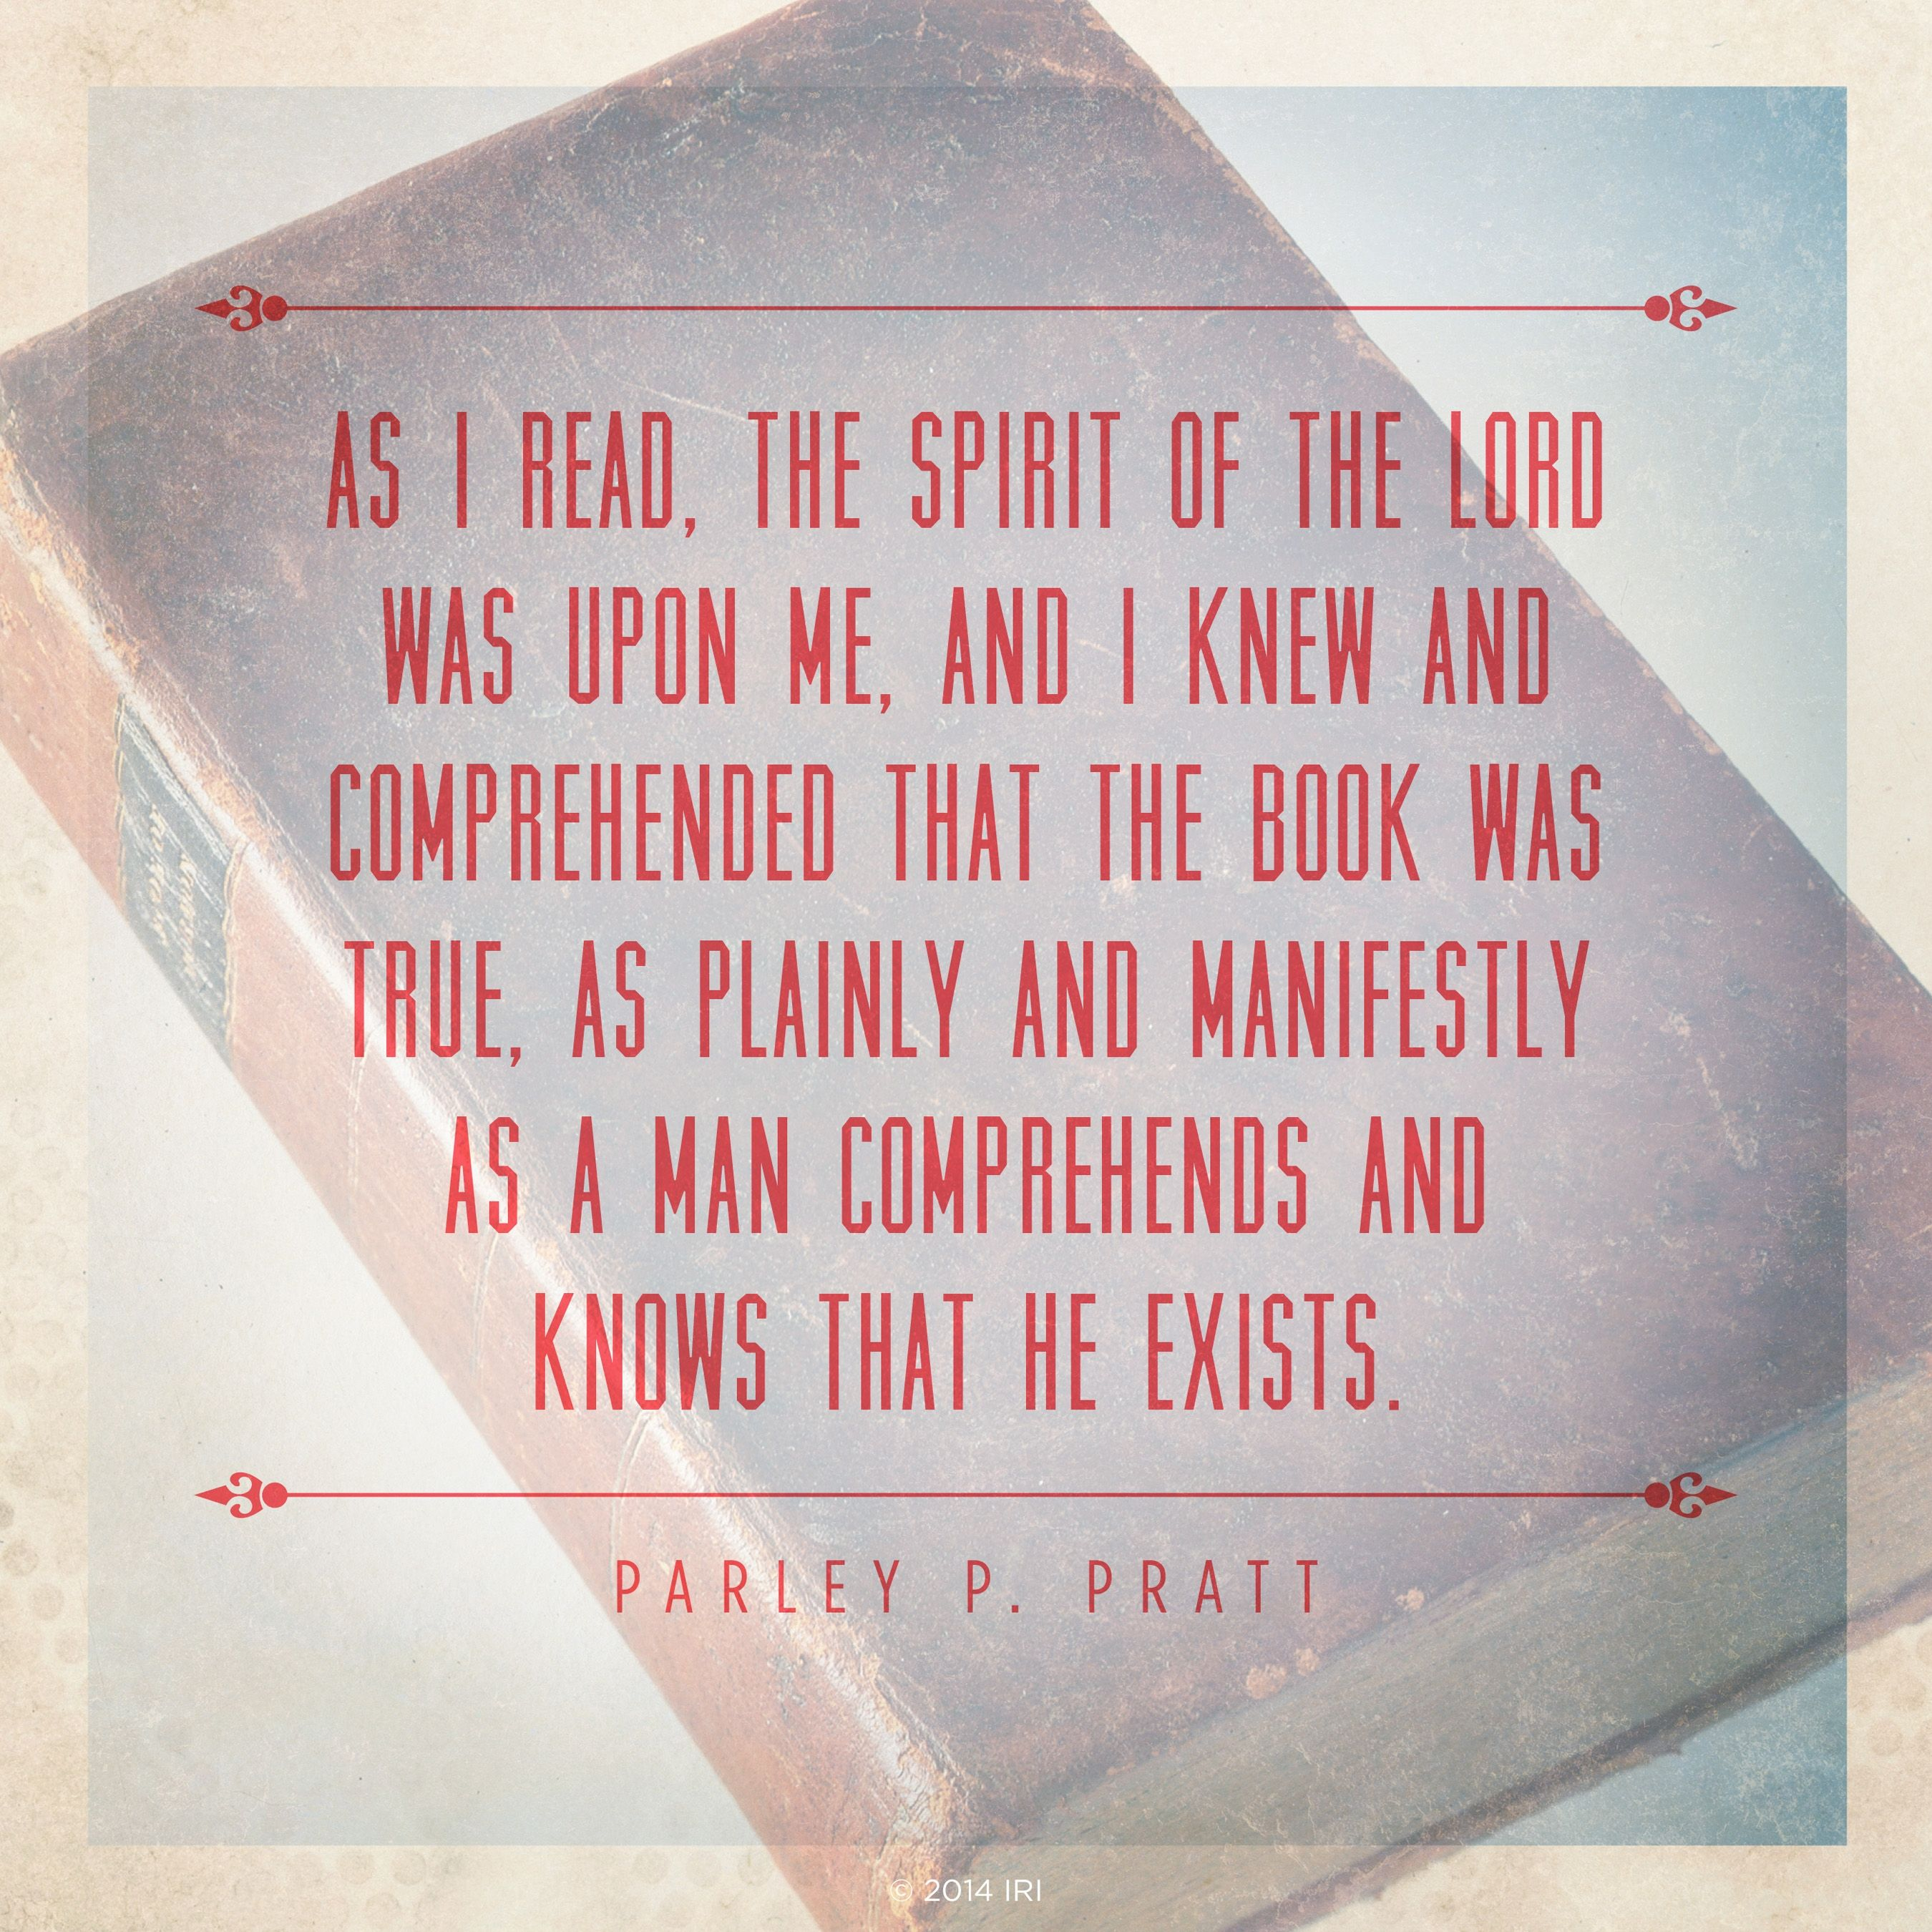 """""""As I read, the spirit of the Lord was upon me, and I knew and comprehended that the book was true, as plainly and manifestly as a man comprehends and knows that he exists.""""—Parley P. Pratt, Autobiography of Parley P. Pratt, ed. Parley P. Pratt Jr. (1938), 36–37"""